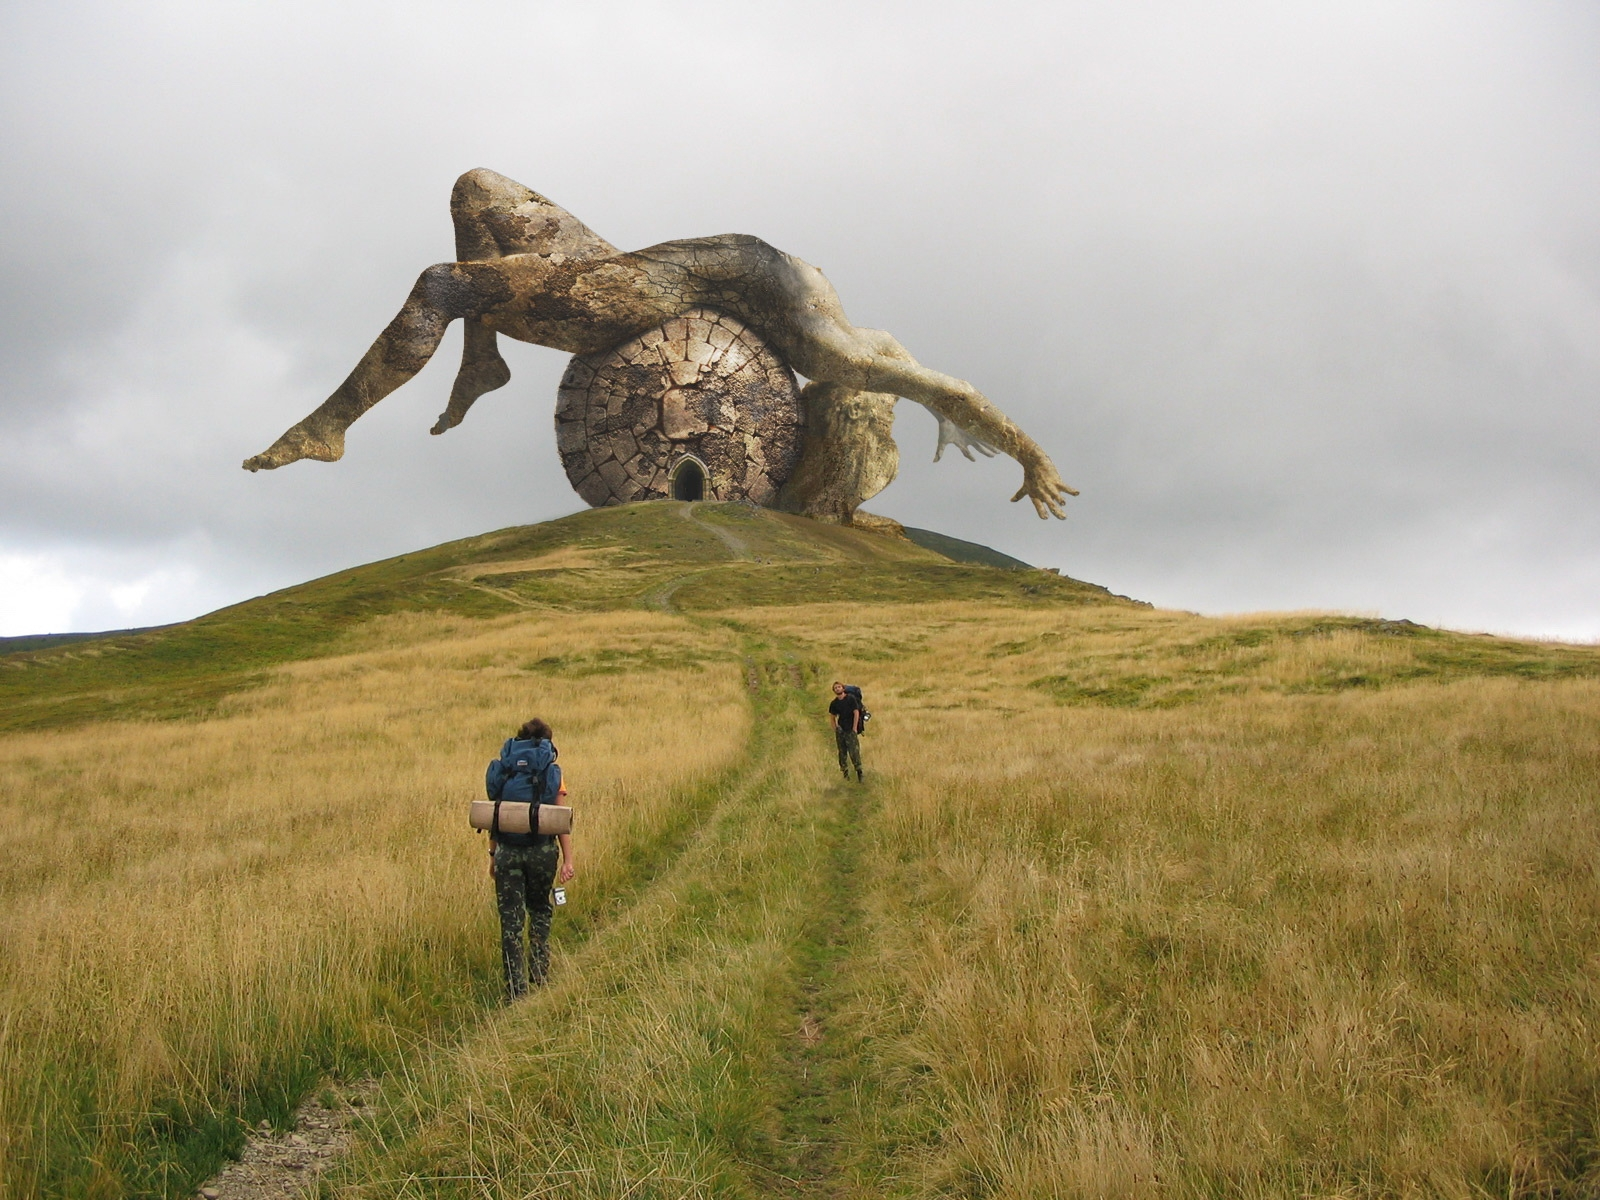 Компьютерная Графика - Клёвый  - Fallen - God - Monument - Cgi - Hill Обои